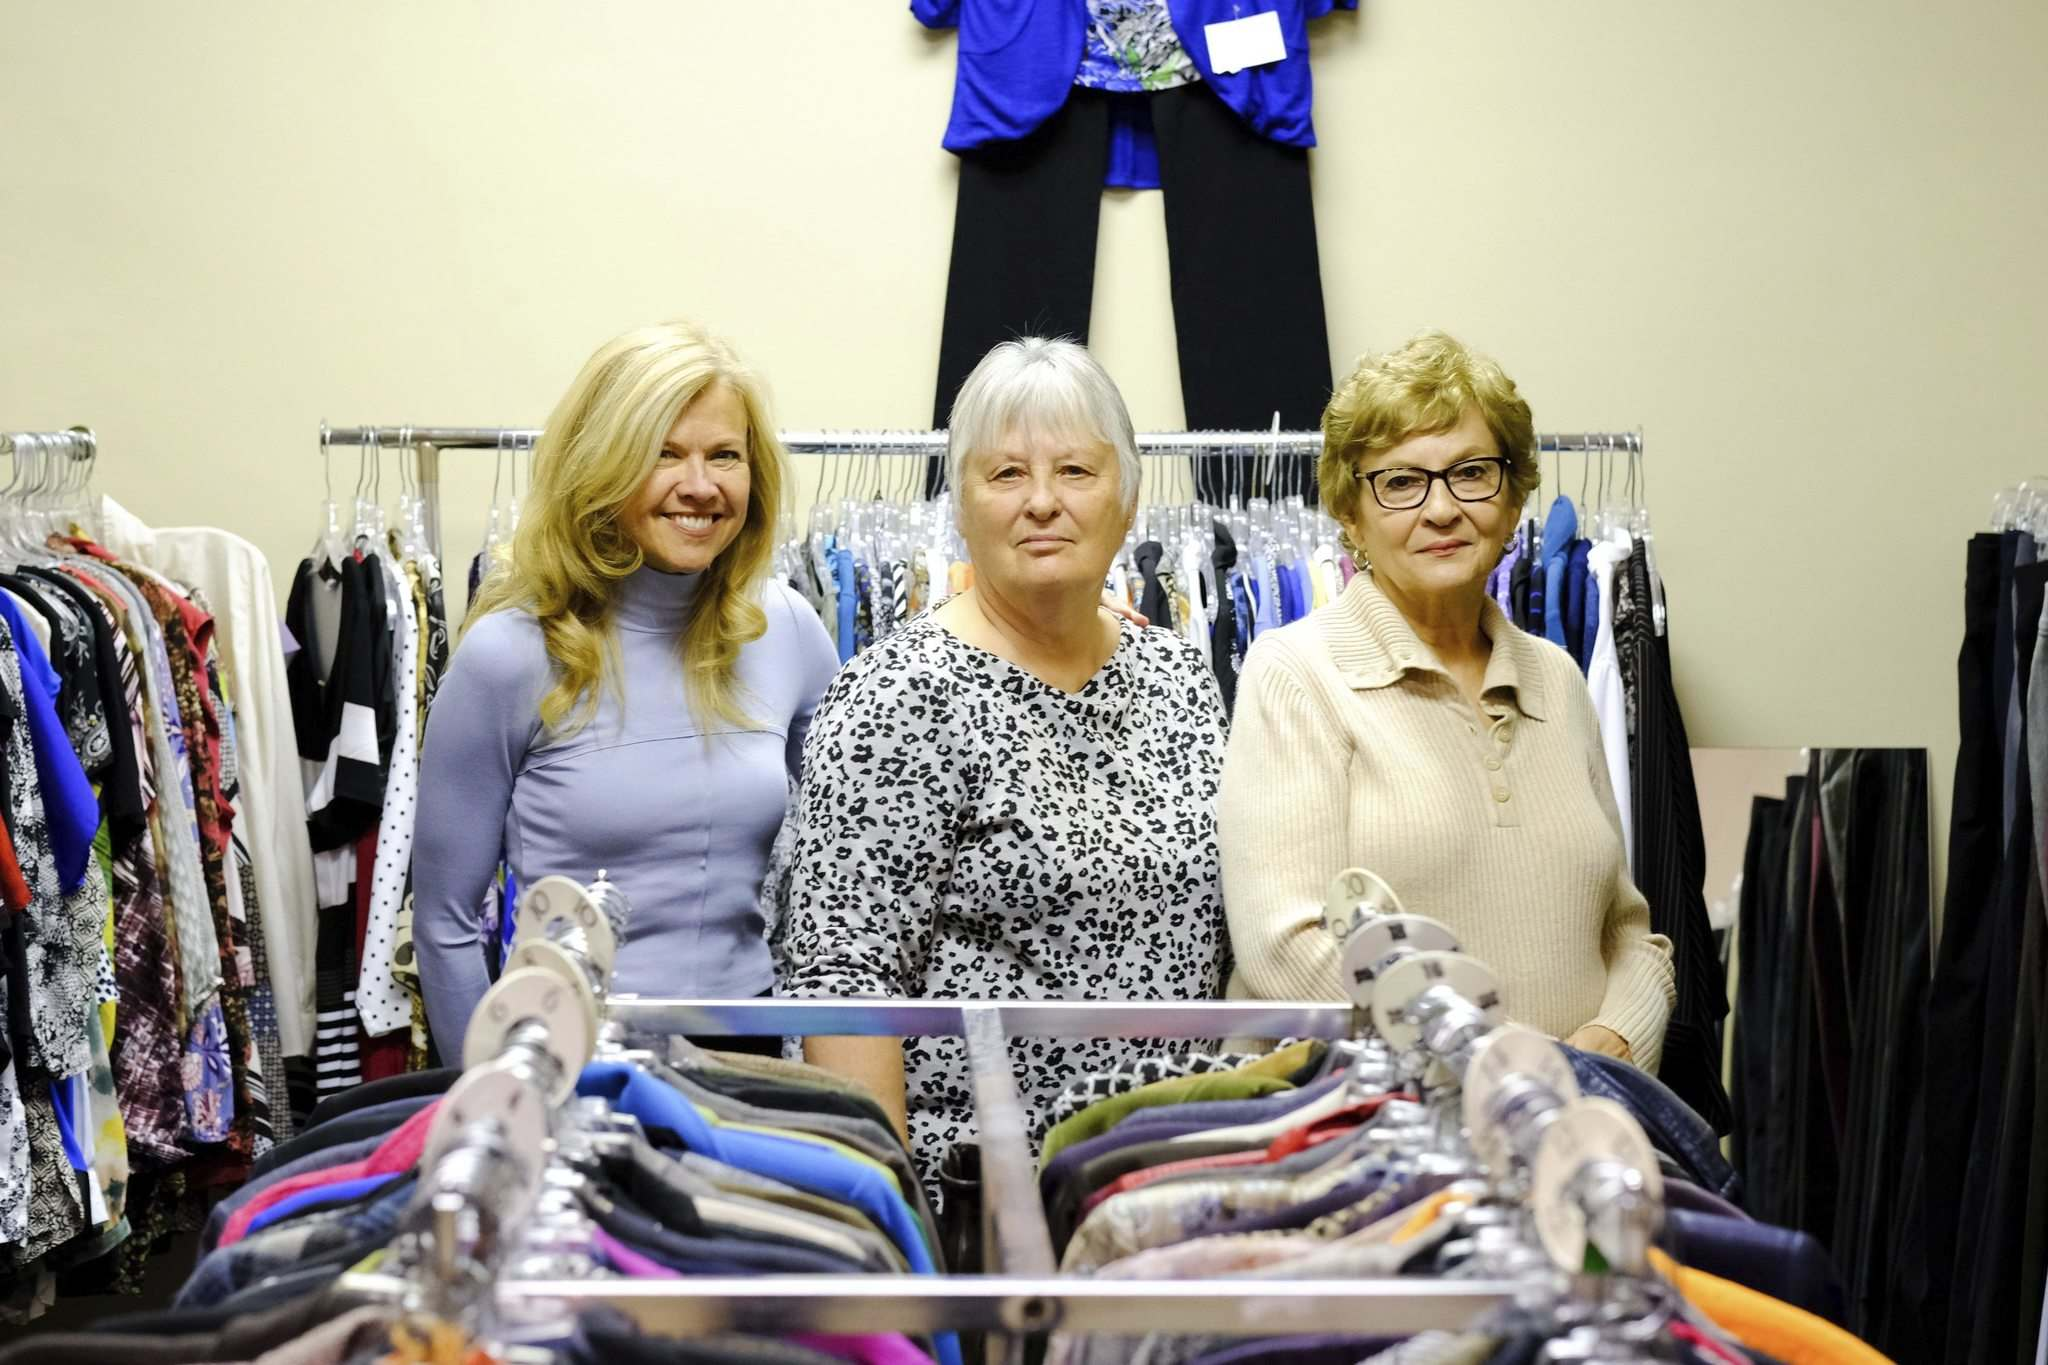 Mike Sudoma / Winnipeg Free Press</p><p>Jane Martens (from left), Susan Taillieu and Tannis Johnston volunteer with Dress For Success, a program that helps disadvantaged women by providing them with professional business clothing for job interviews.</p>